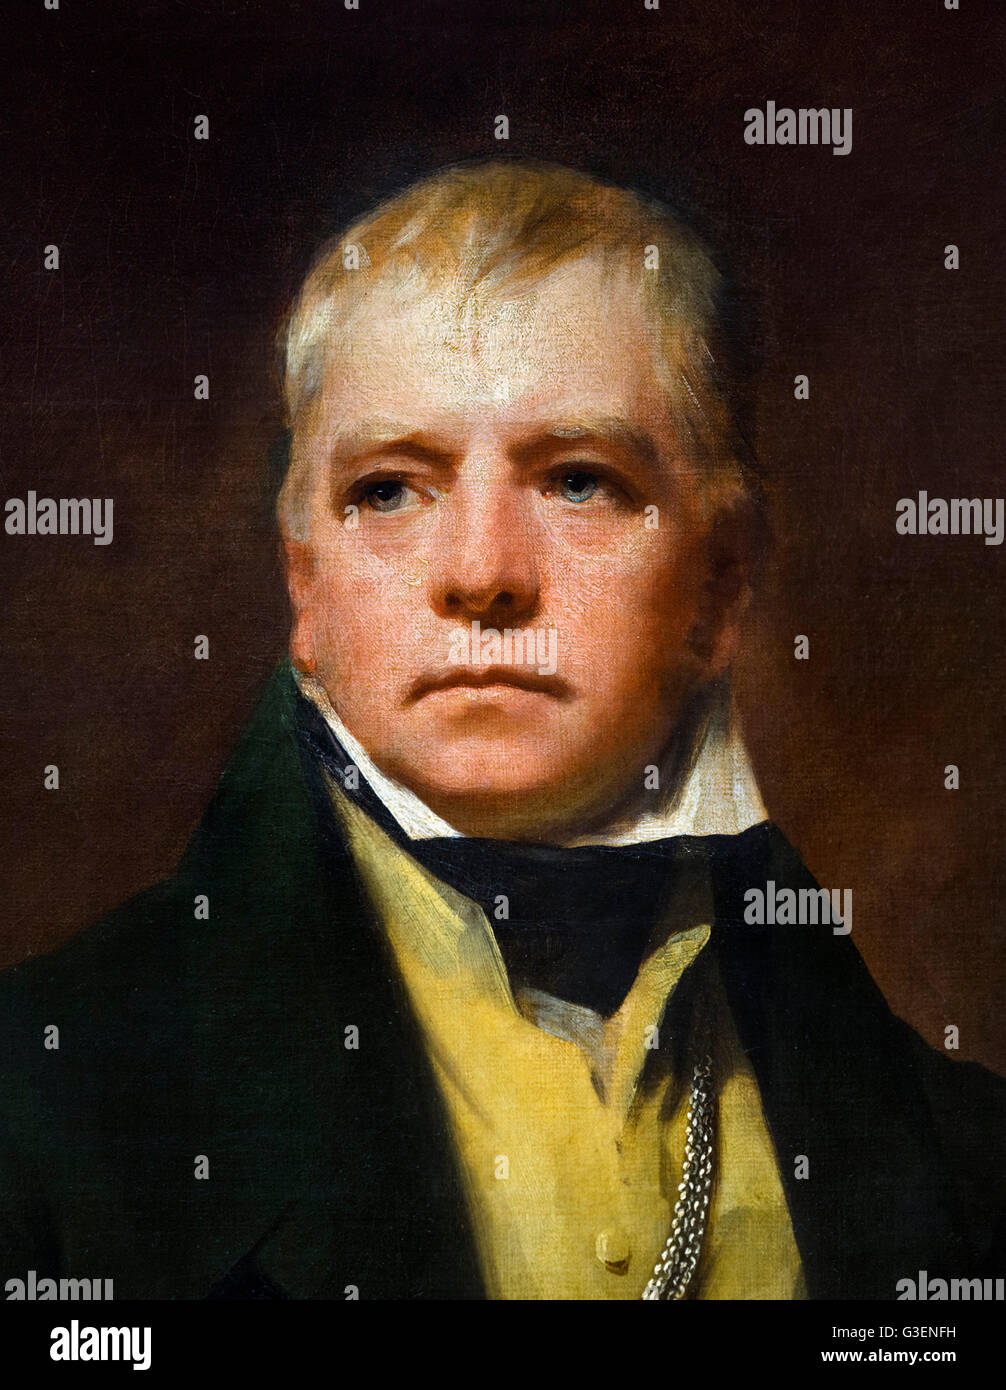 Sir Walter Scott. The Scottish novelist, Sir Walter Scott (1771–1832) portrait by Henry Raeburn, oil on canvas, - Stock Image